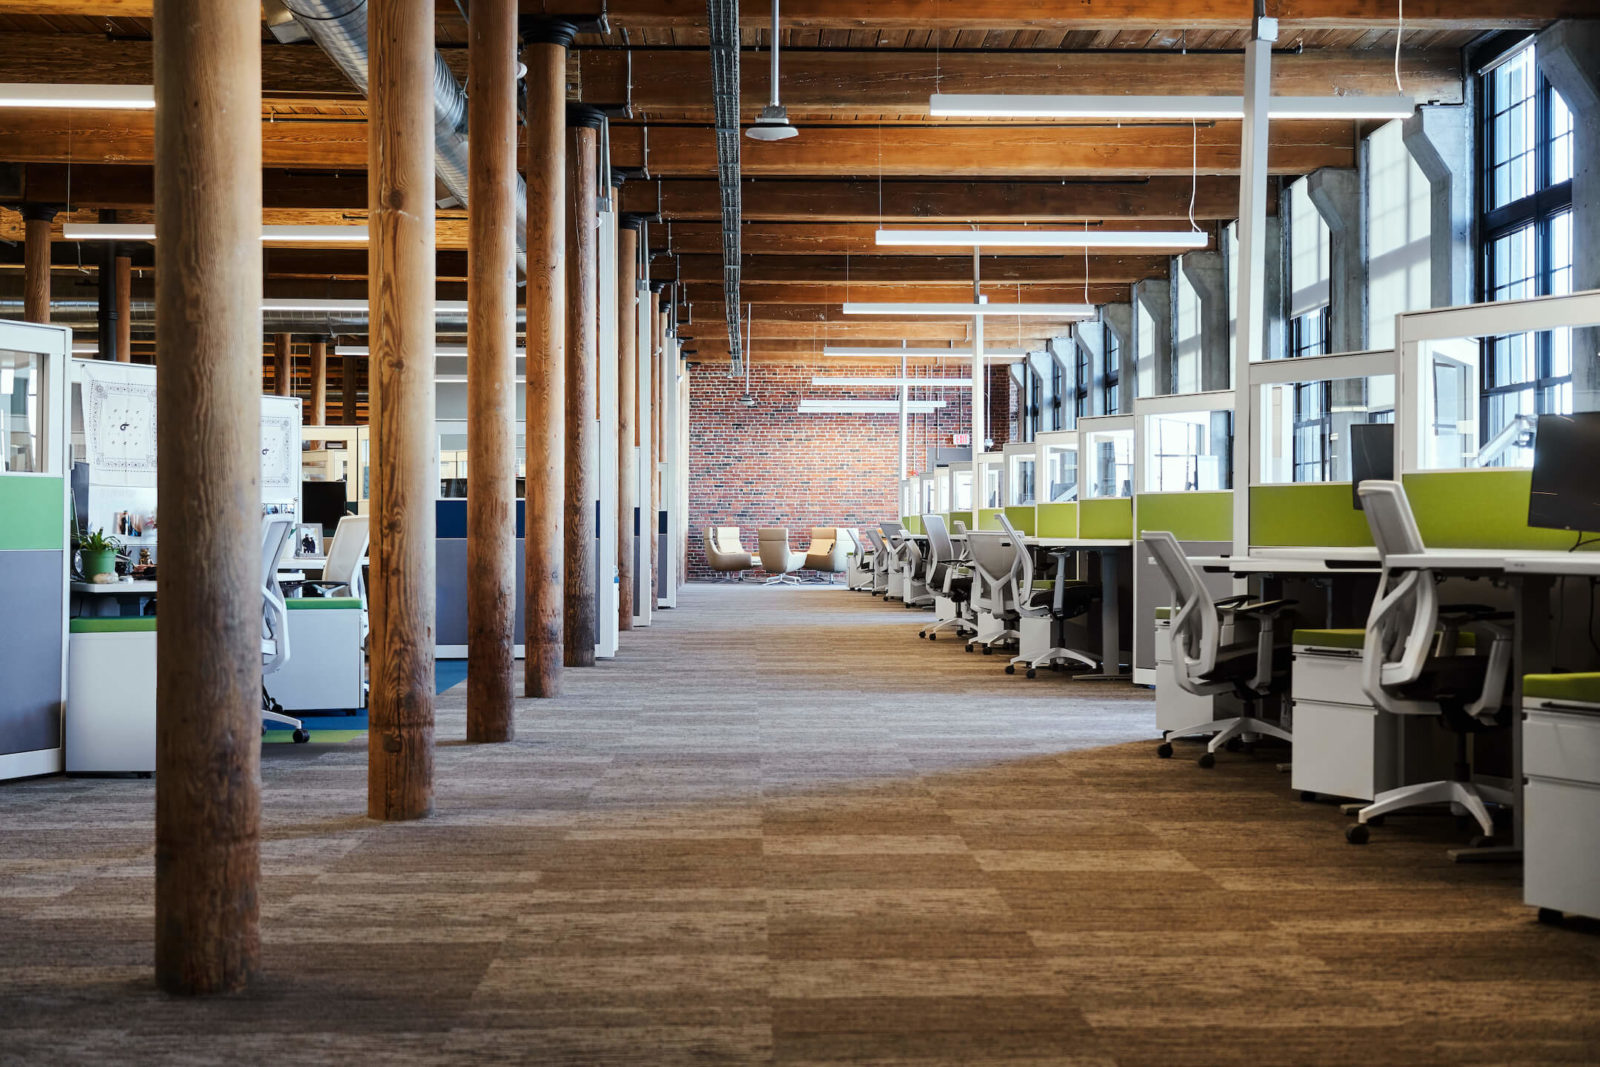 Rows of cubicles inside renovated office space